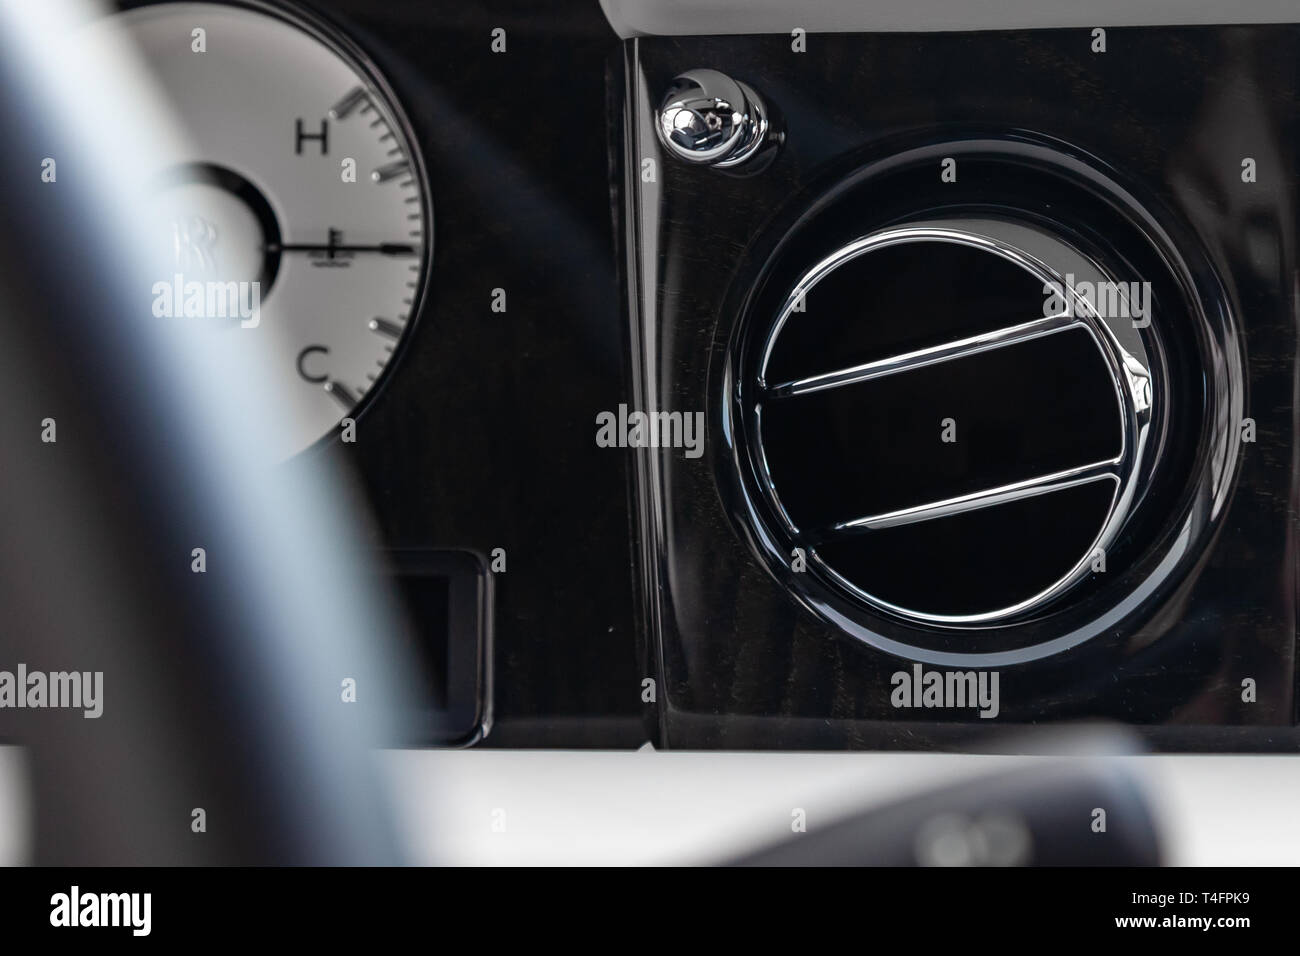 A close-up view of a part of the interior of a modern luxury car with a view of the ventilation deflector of the stove for heating and cooling the pas - Stock Image